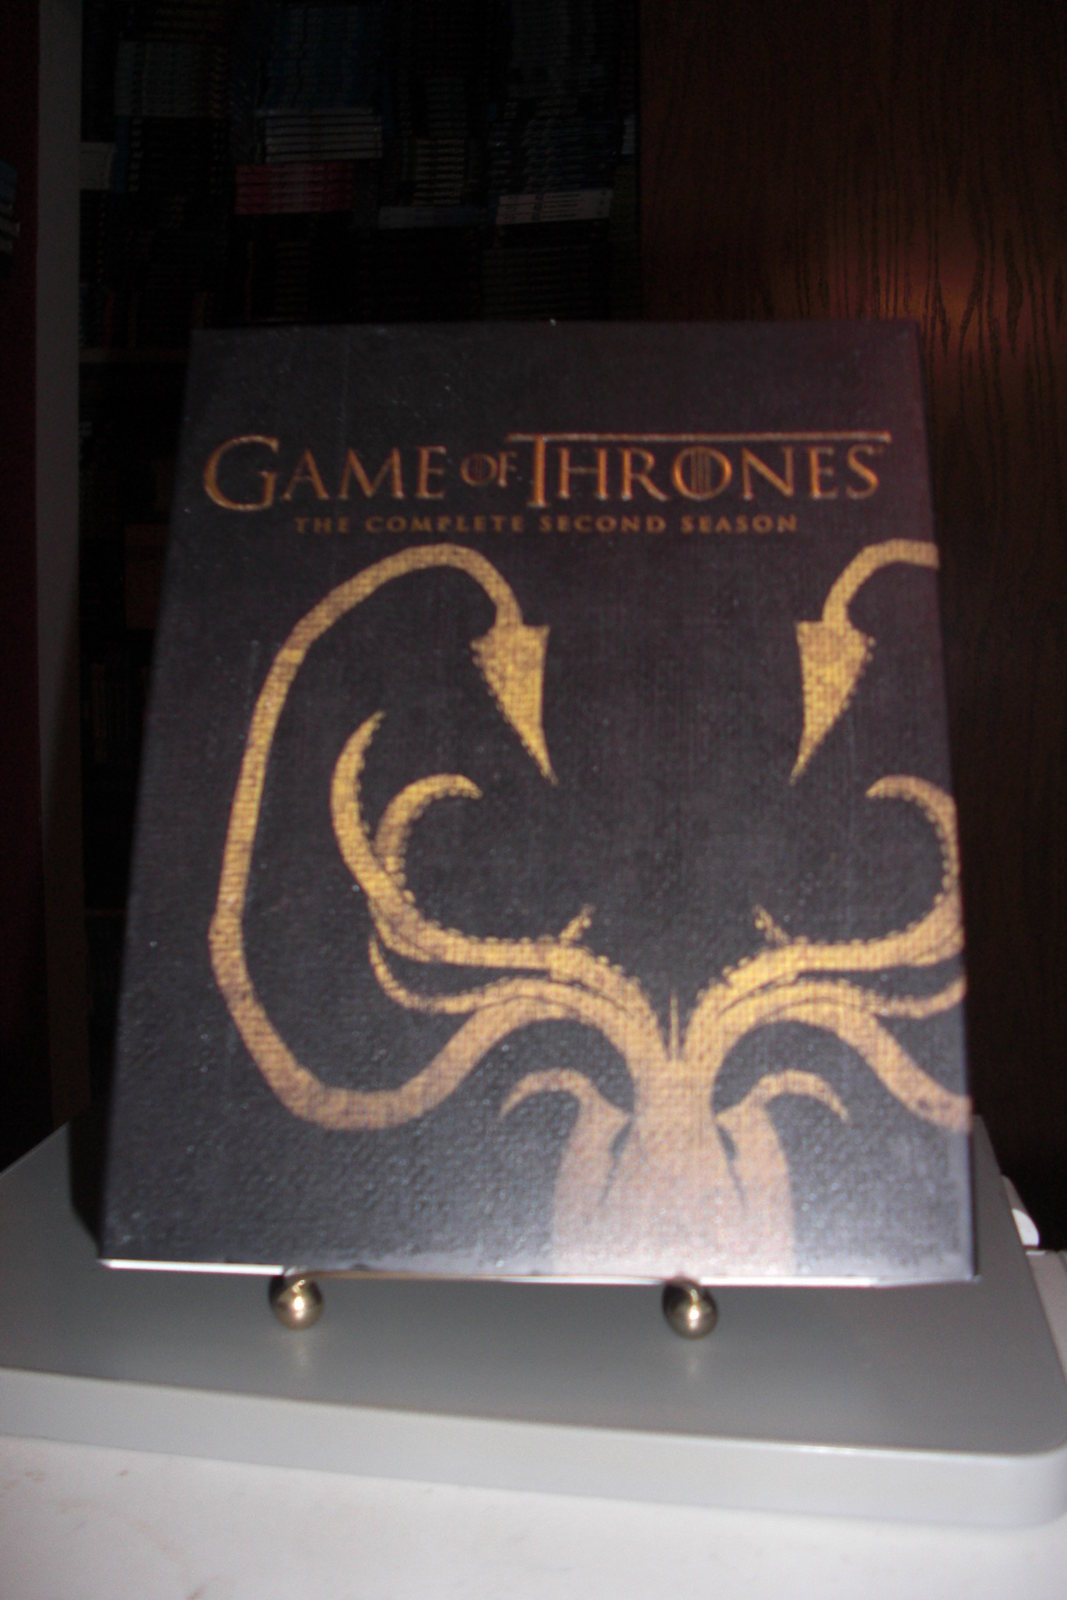 Game of Thrones: Season 2 Blu-ray Best Buy Exclusive Greyjoy Slip Only -No Discs